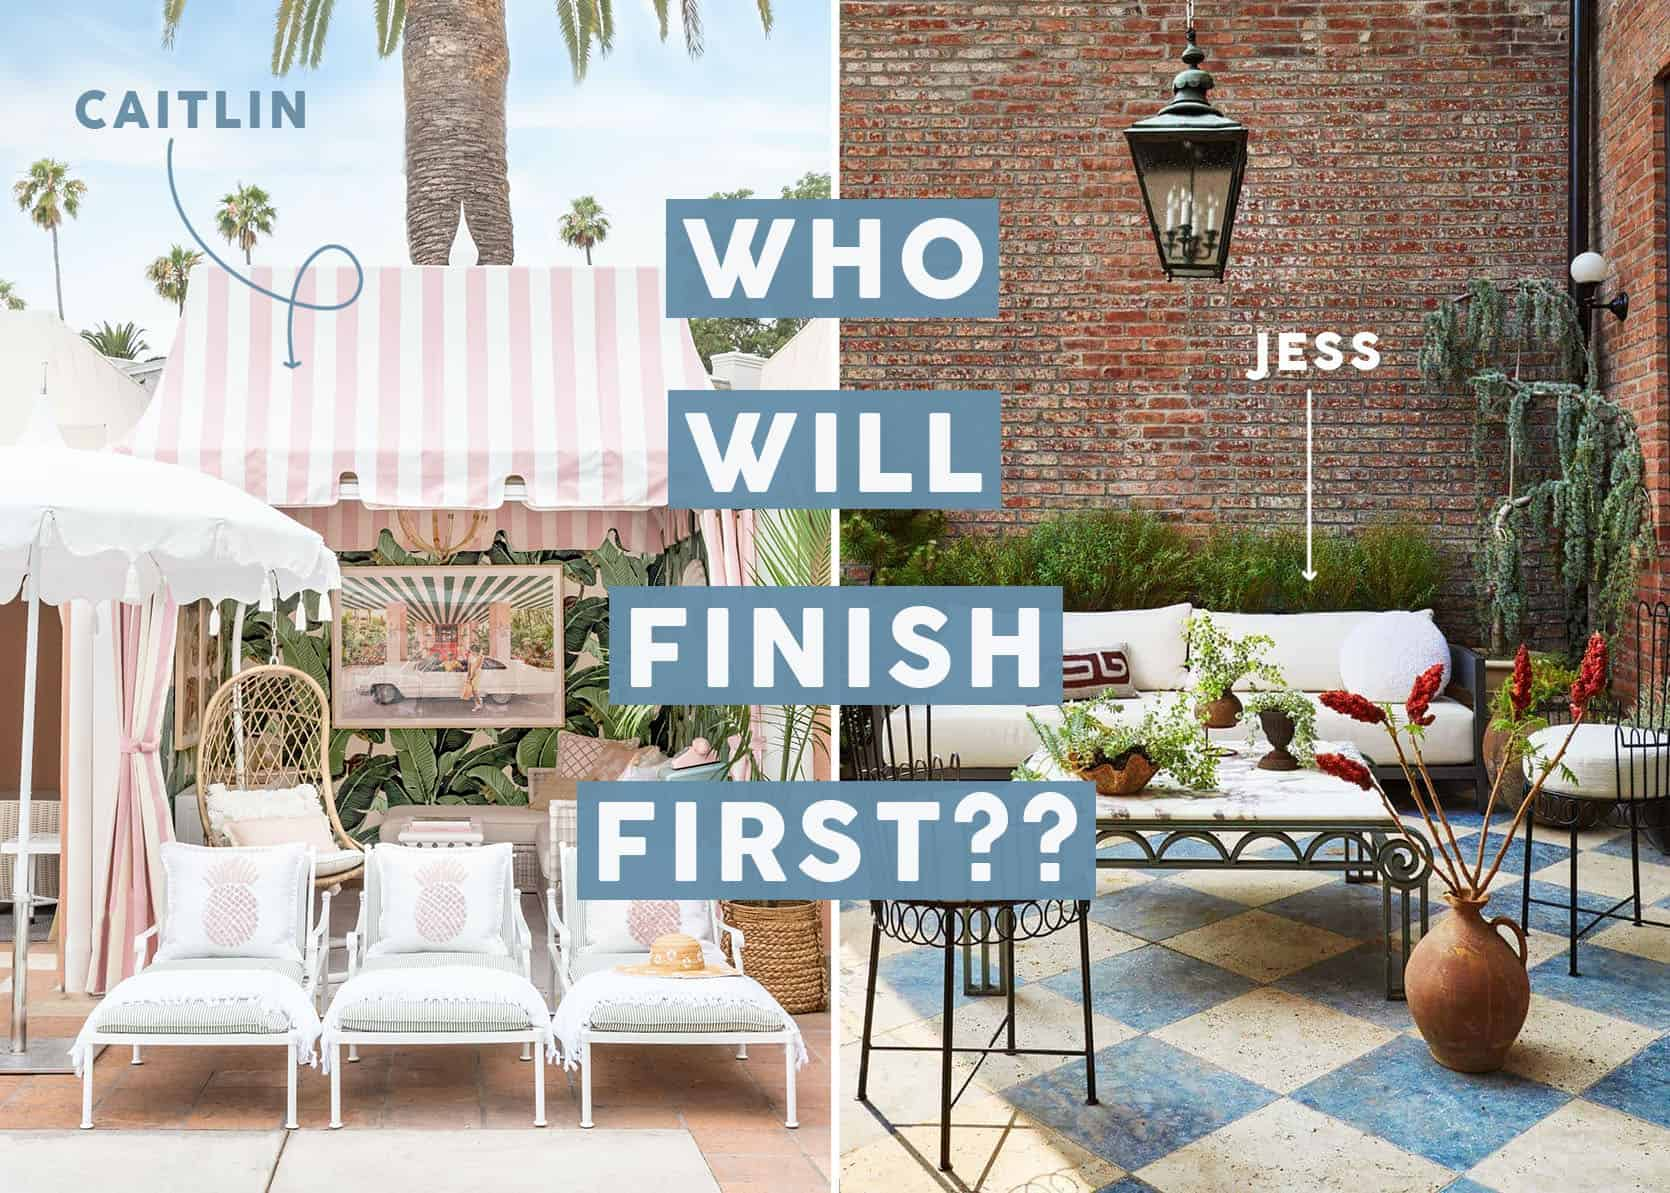 Race to 7/20: Jess and Caitlin Are Racing To Decorate Their, Let's Say, Challenging Balconies… Here are The Plans